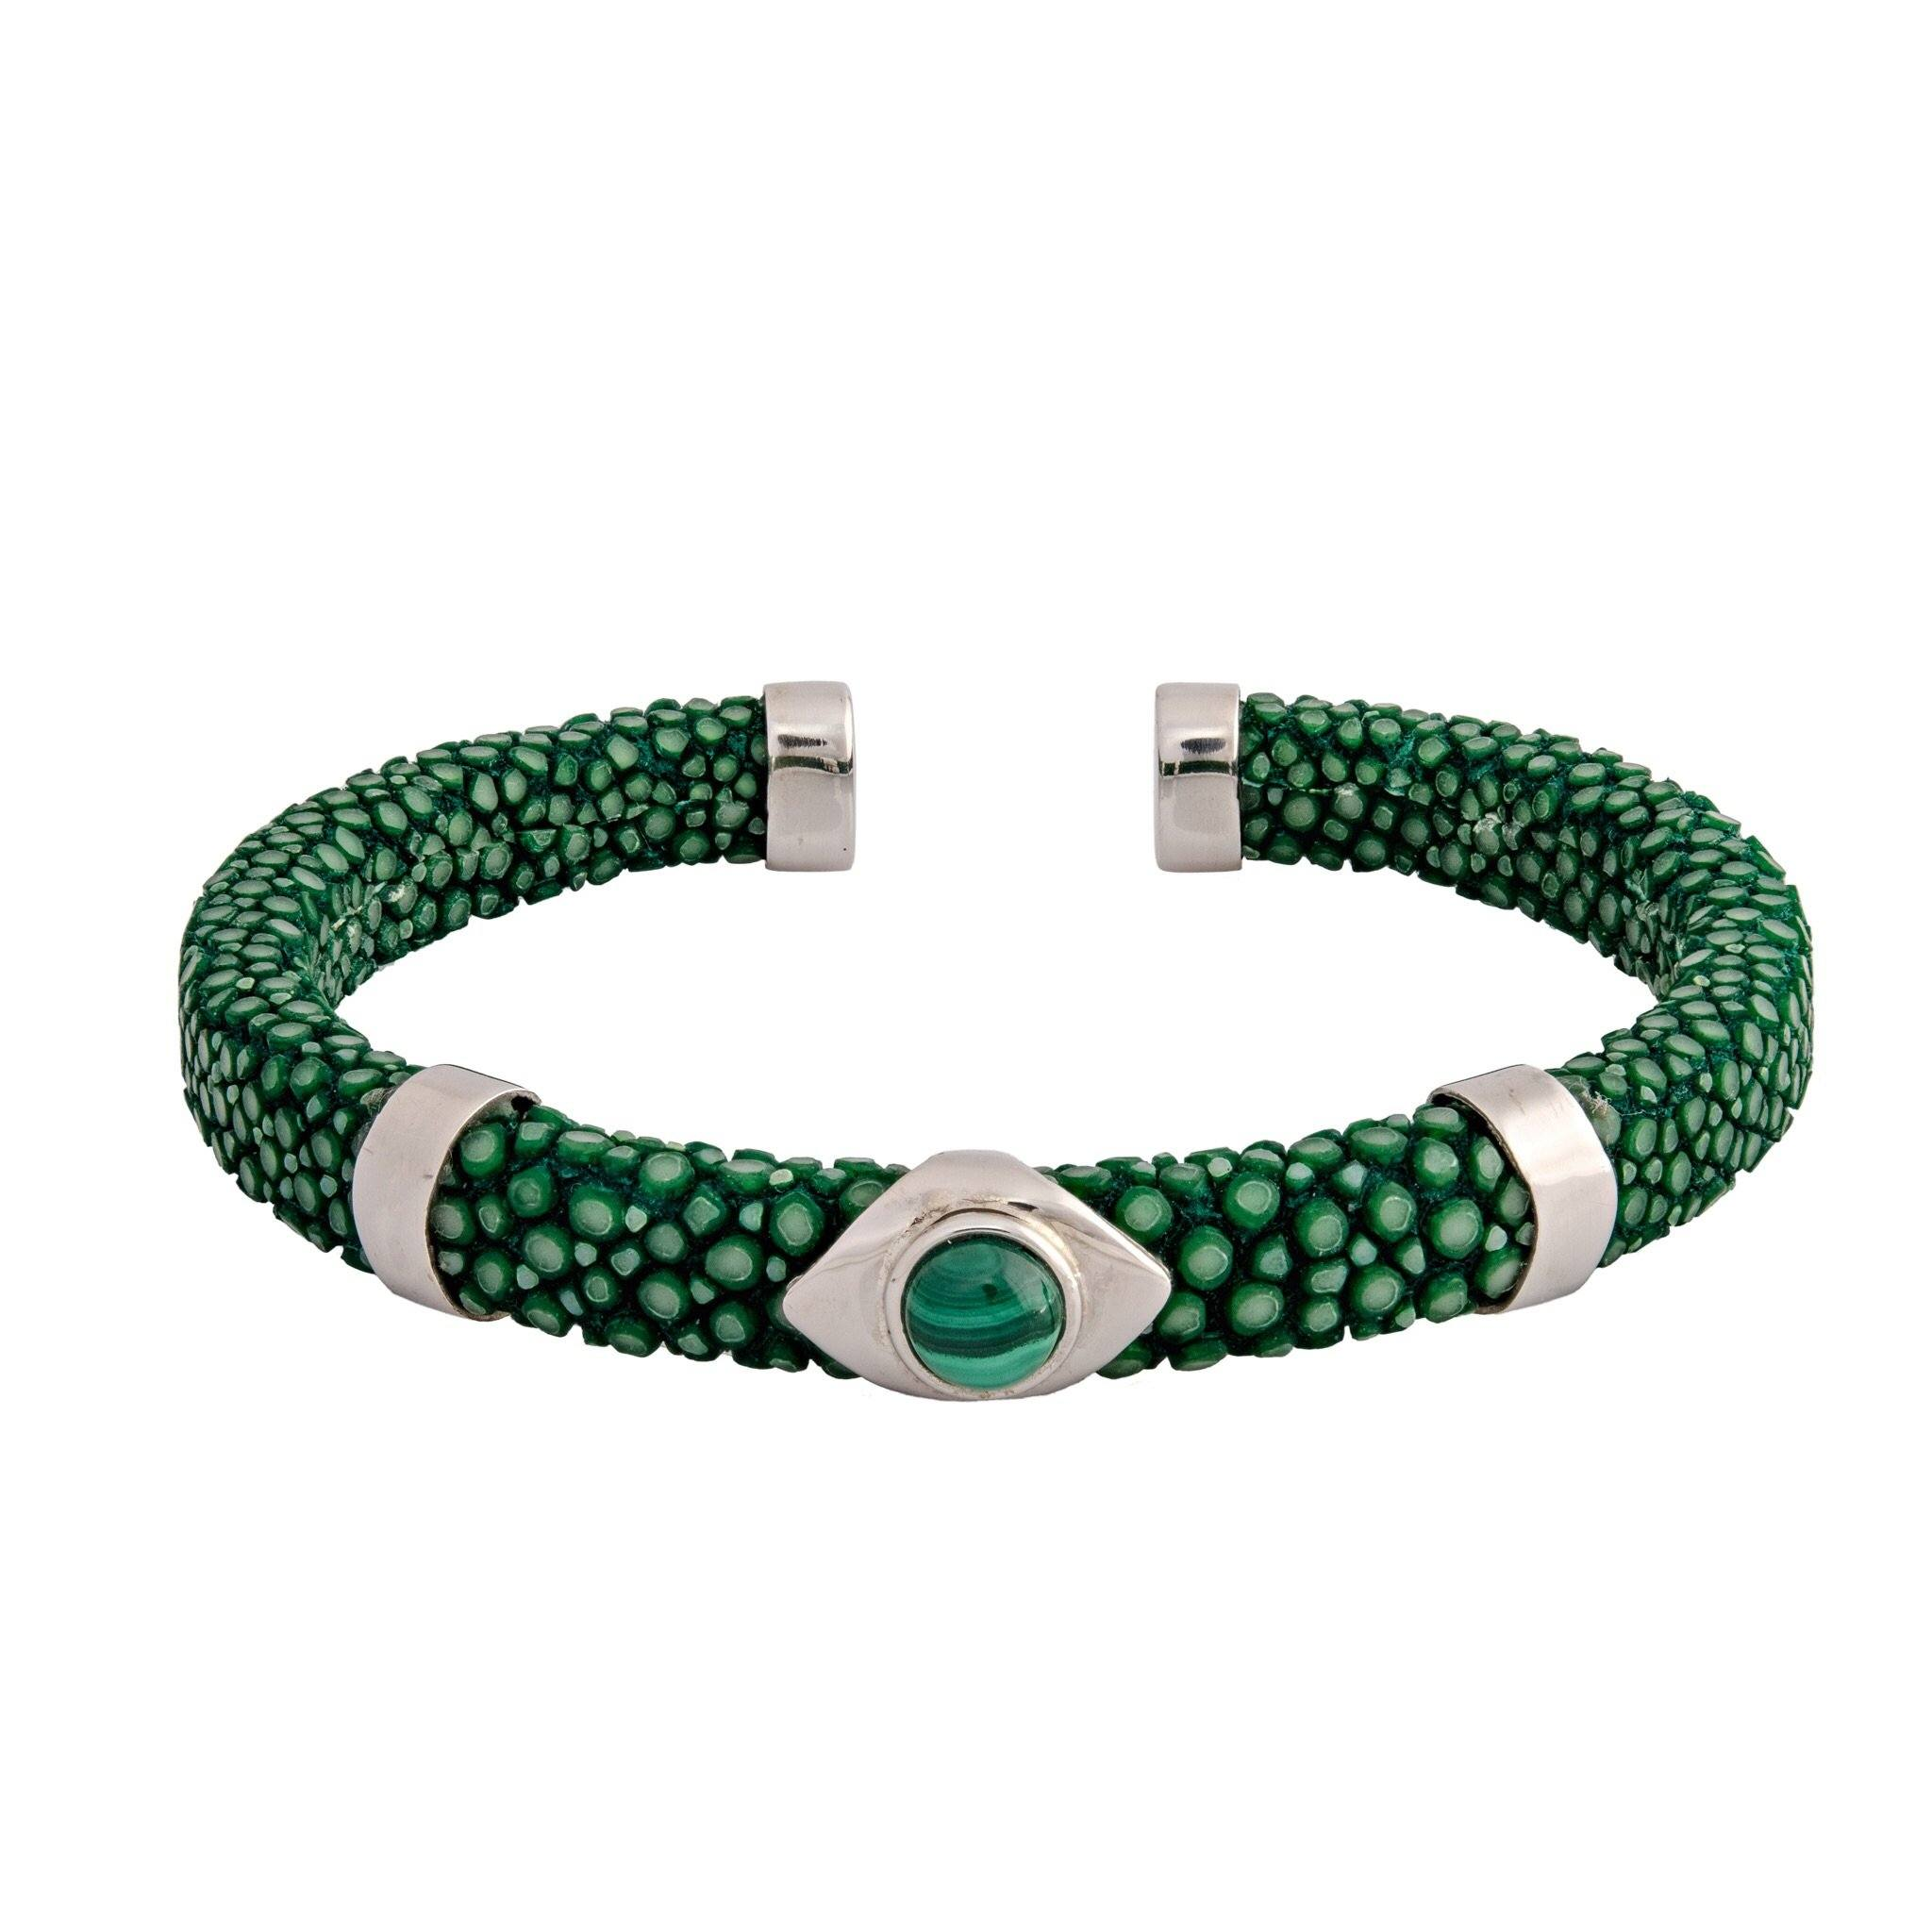 JAVA green onyx and stingray bangle - MadamSiam